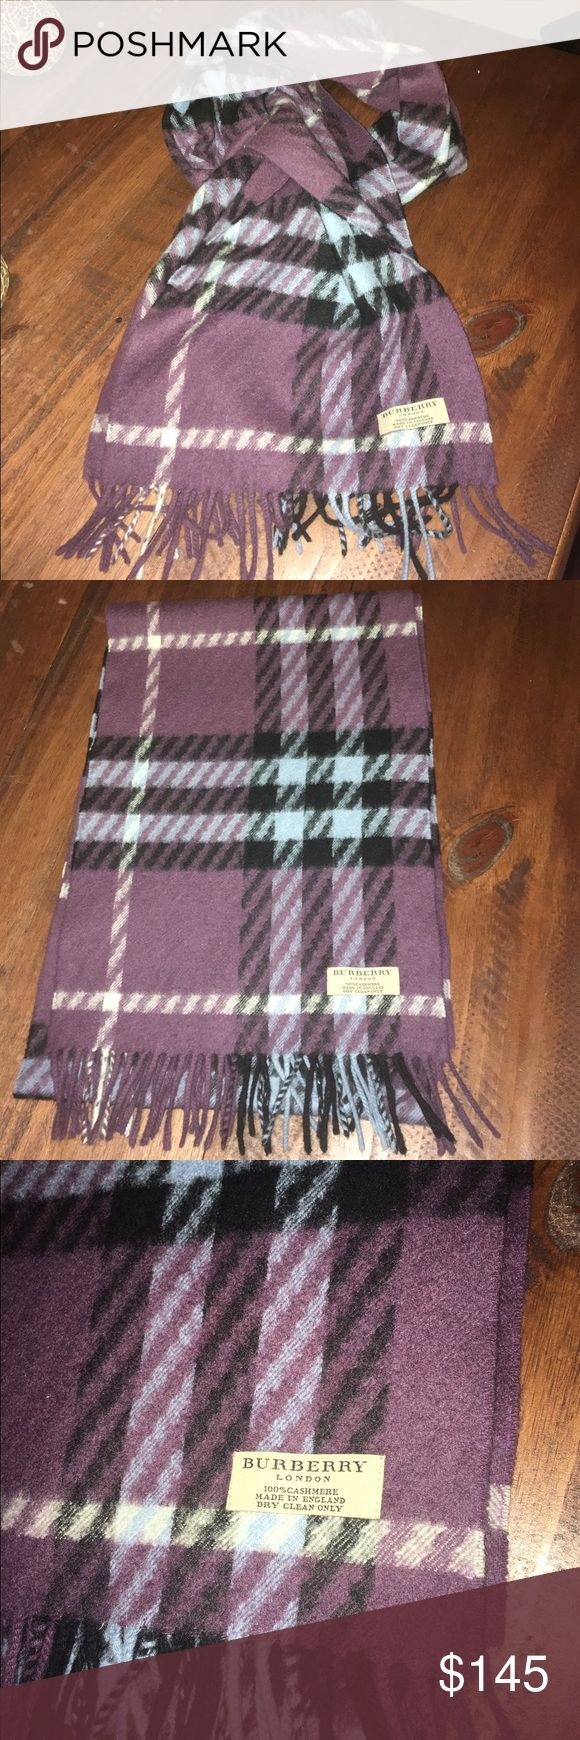 Burberry 100% cashmere scarf Beautiful (and warm!) Burberry 100% cashmere scarf in a majority of purple with slight blue and black accents. It is in great condition! Burberry Accessories Scarves & Wraps